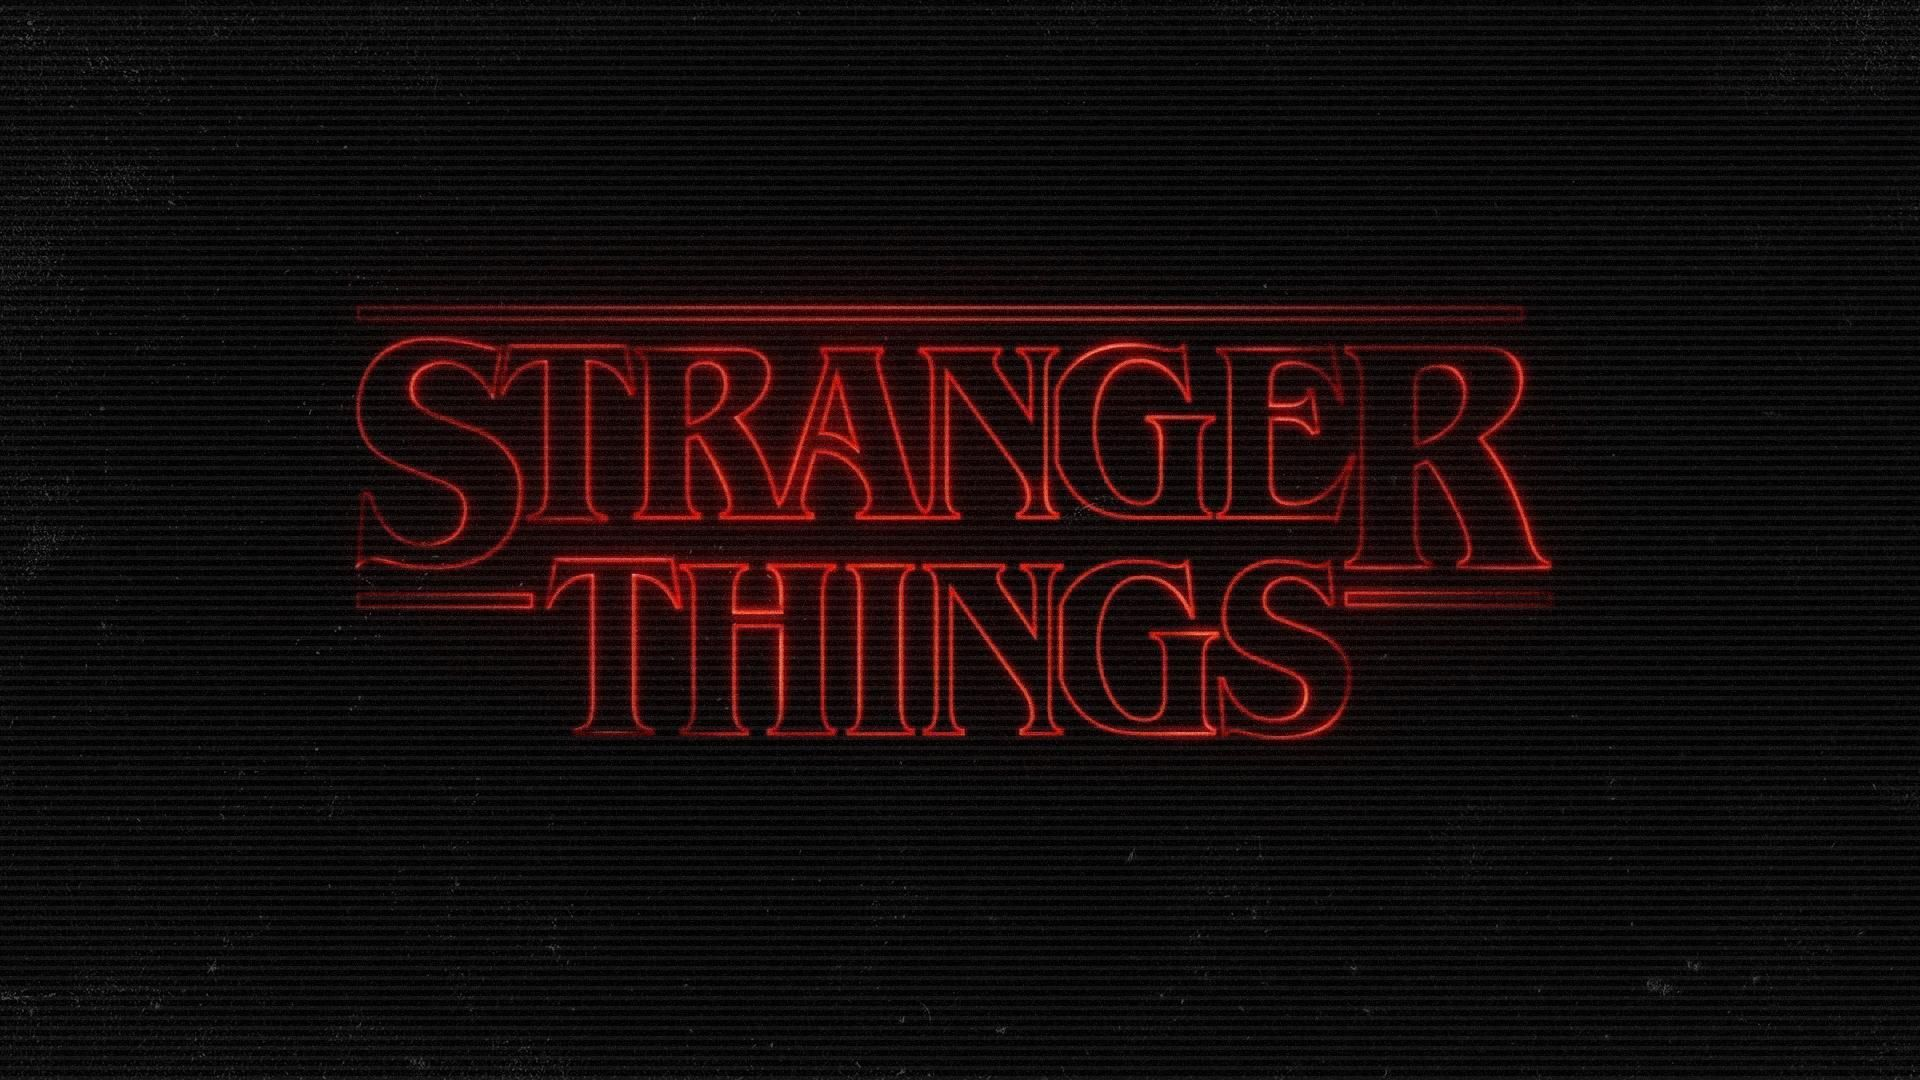 1920x1080 undefined Stranger Things Wallpapers (26 Wallpapers) | Adorable ...